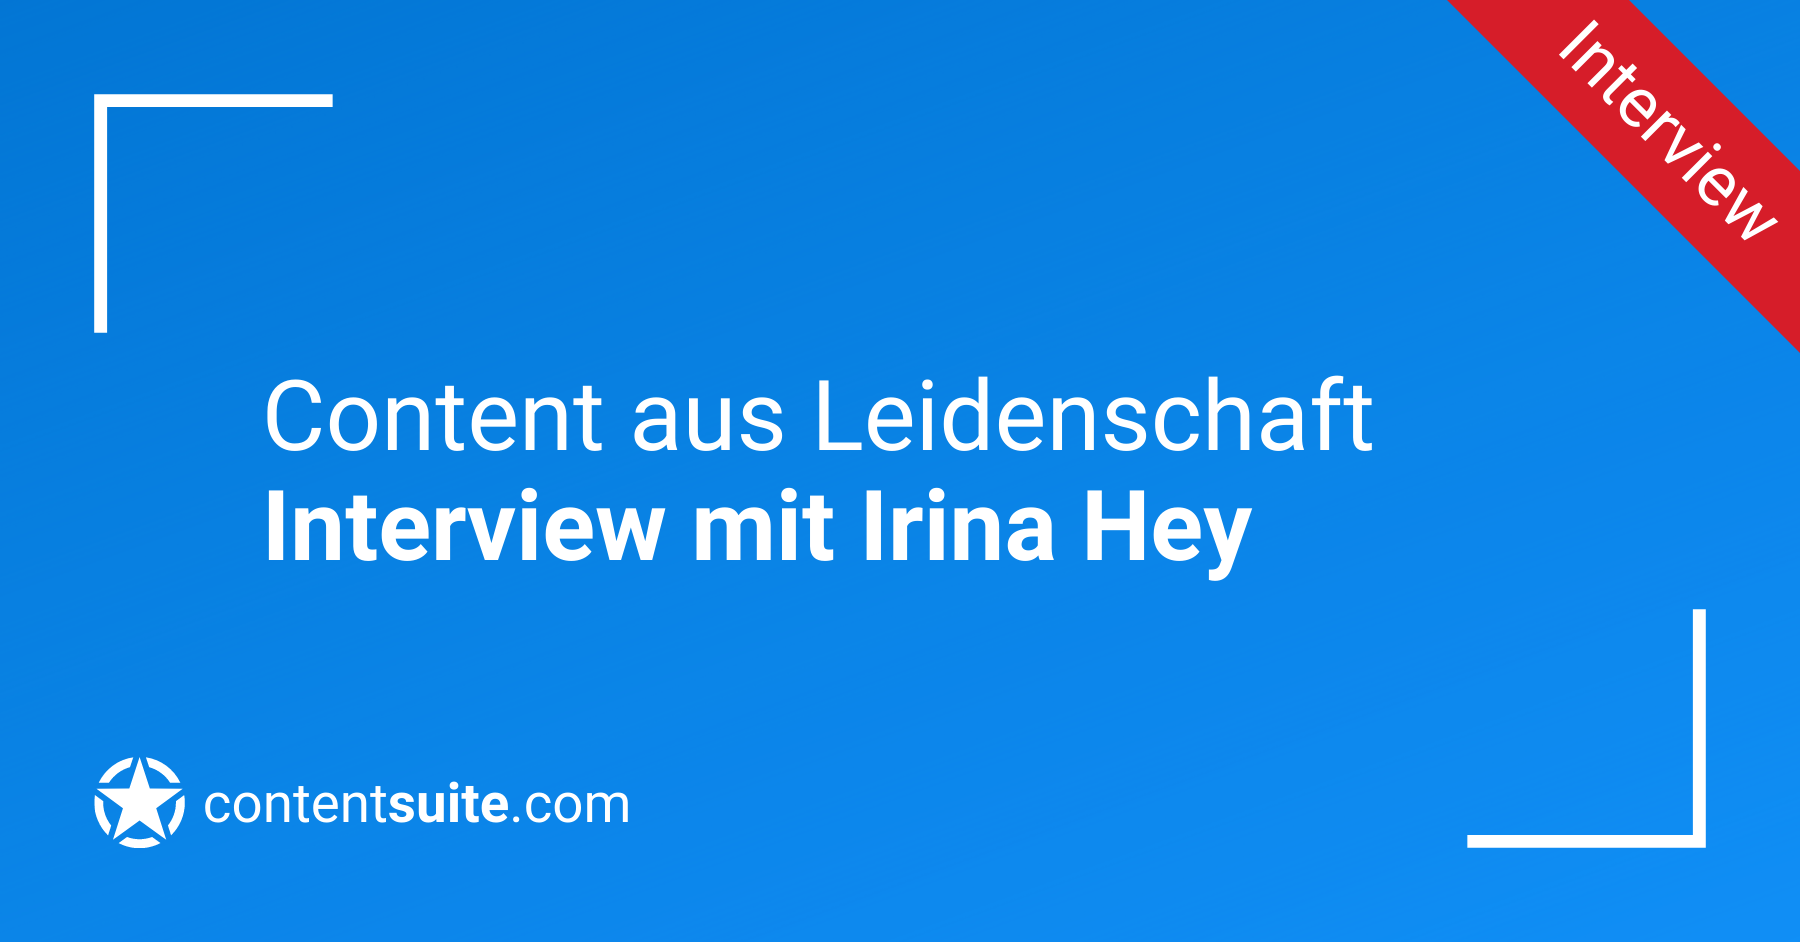 Content Marketing aus Leidenschaft, Interview mit Irina Hey Cover Grafik